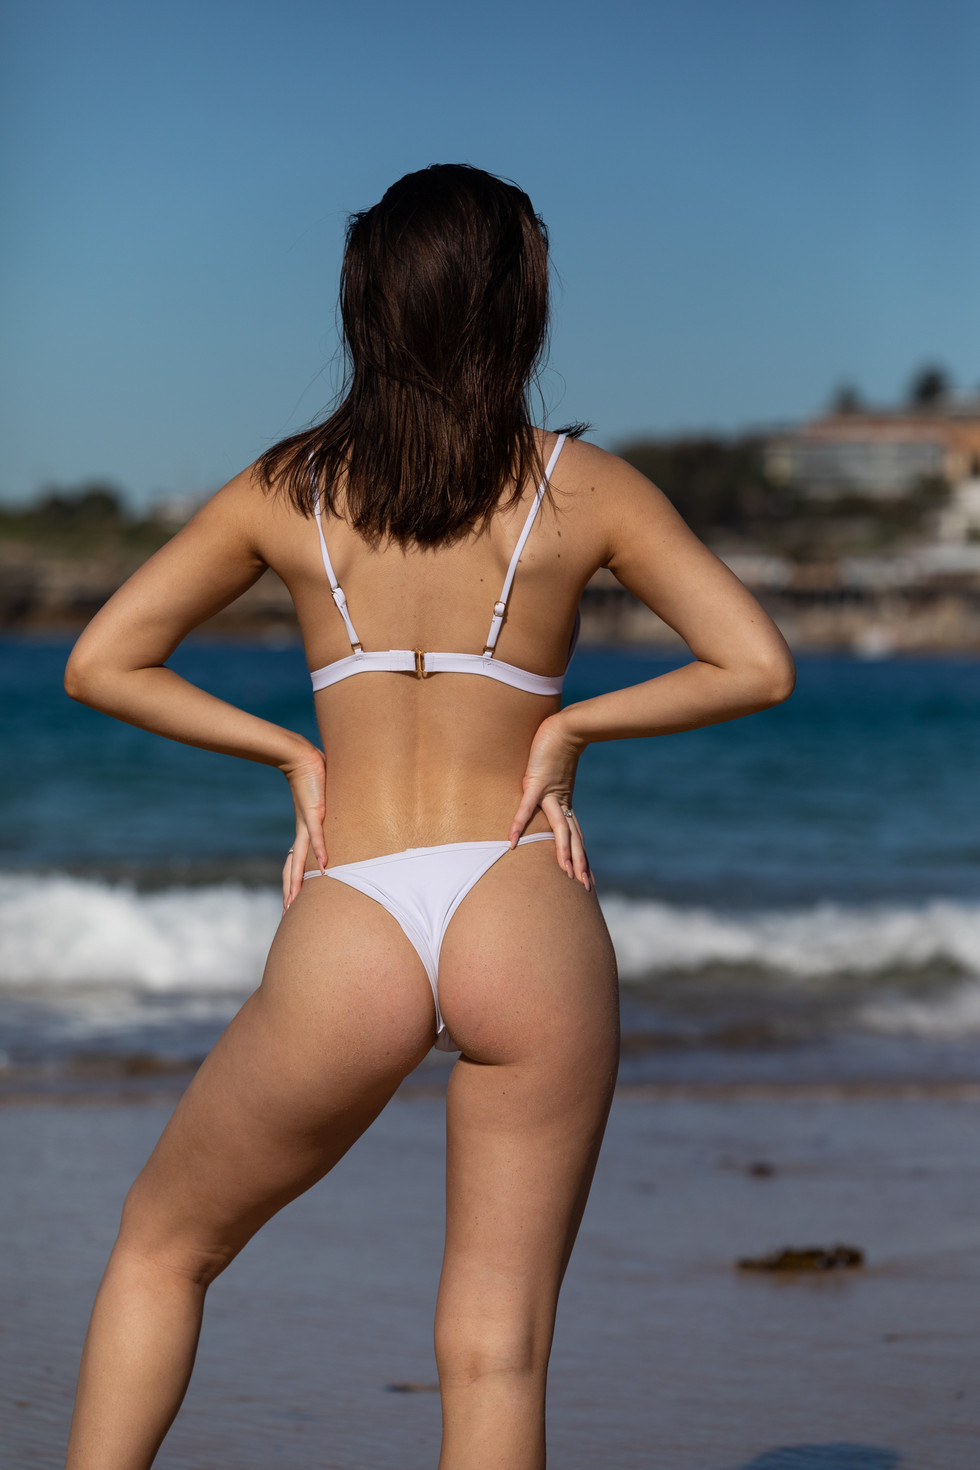 Bella_by_CoogeePhotography-477382.jpg